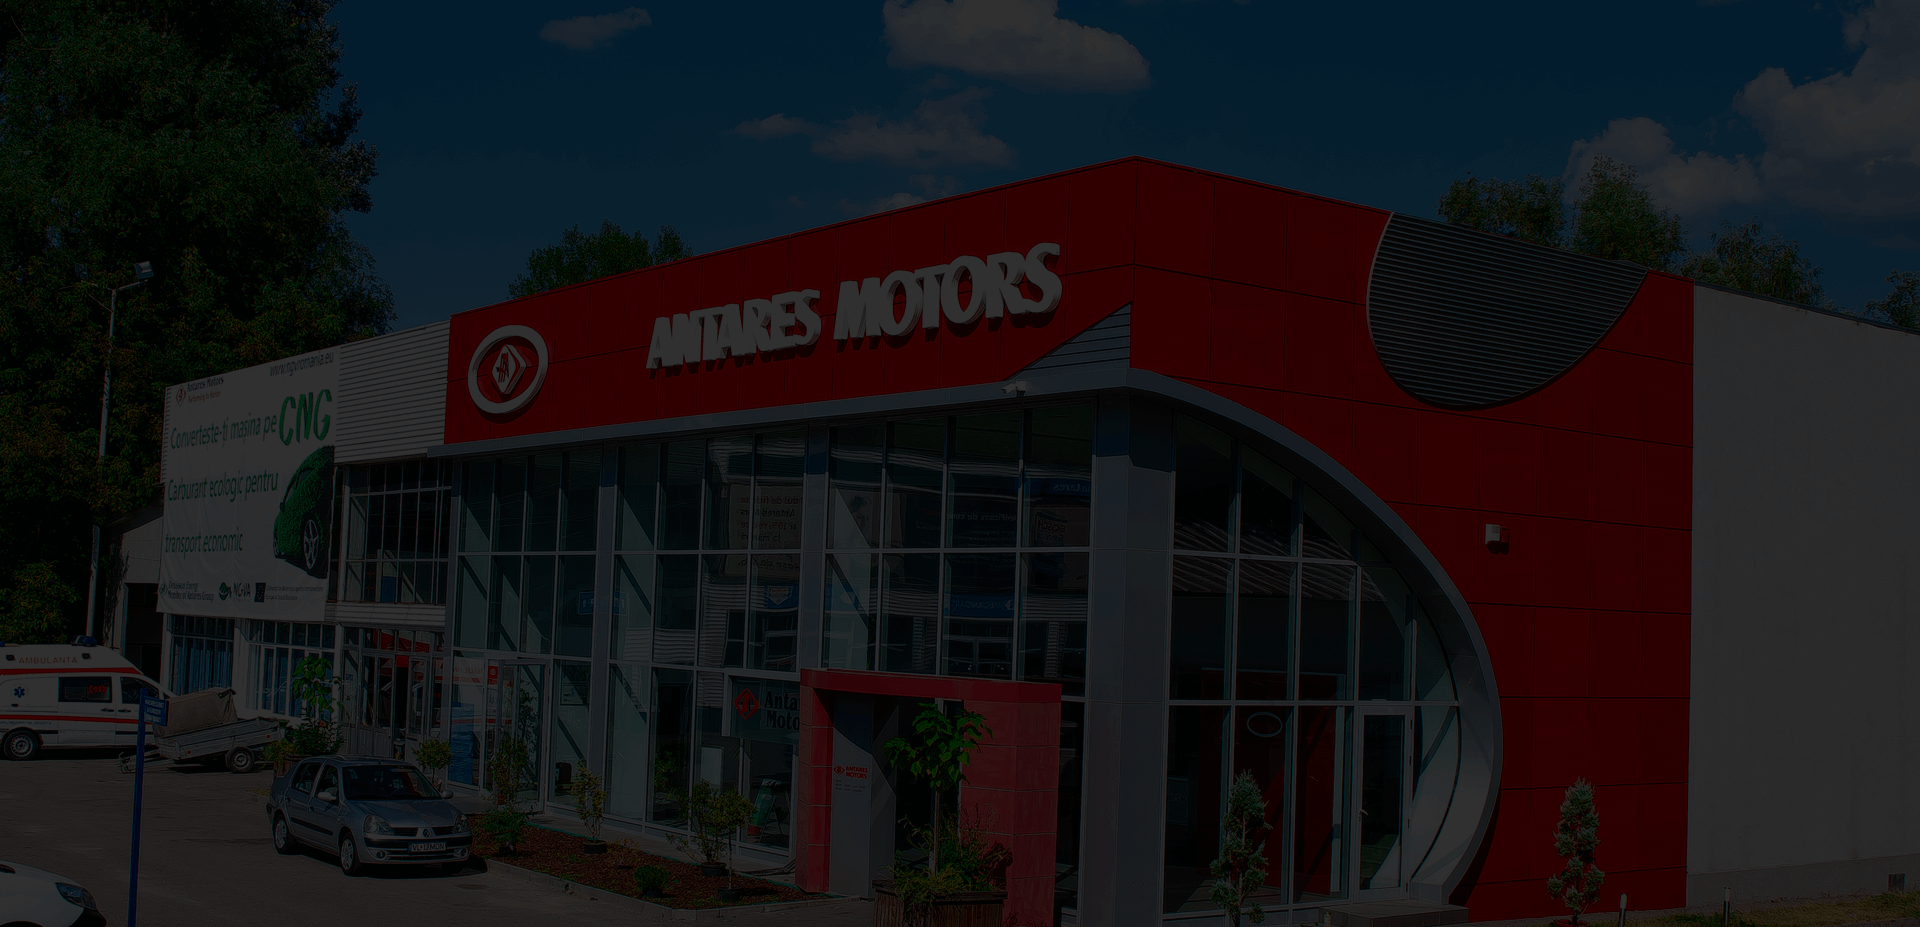 background sediu Antares Motoros